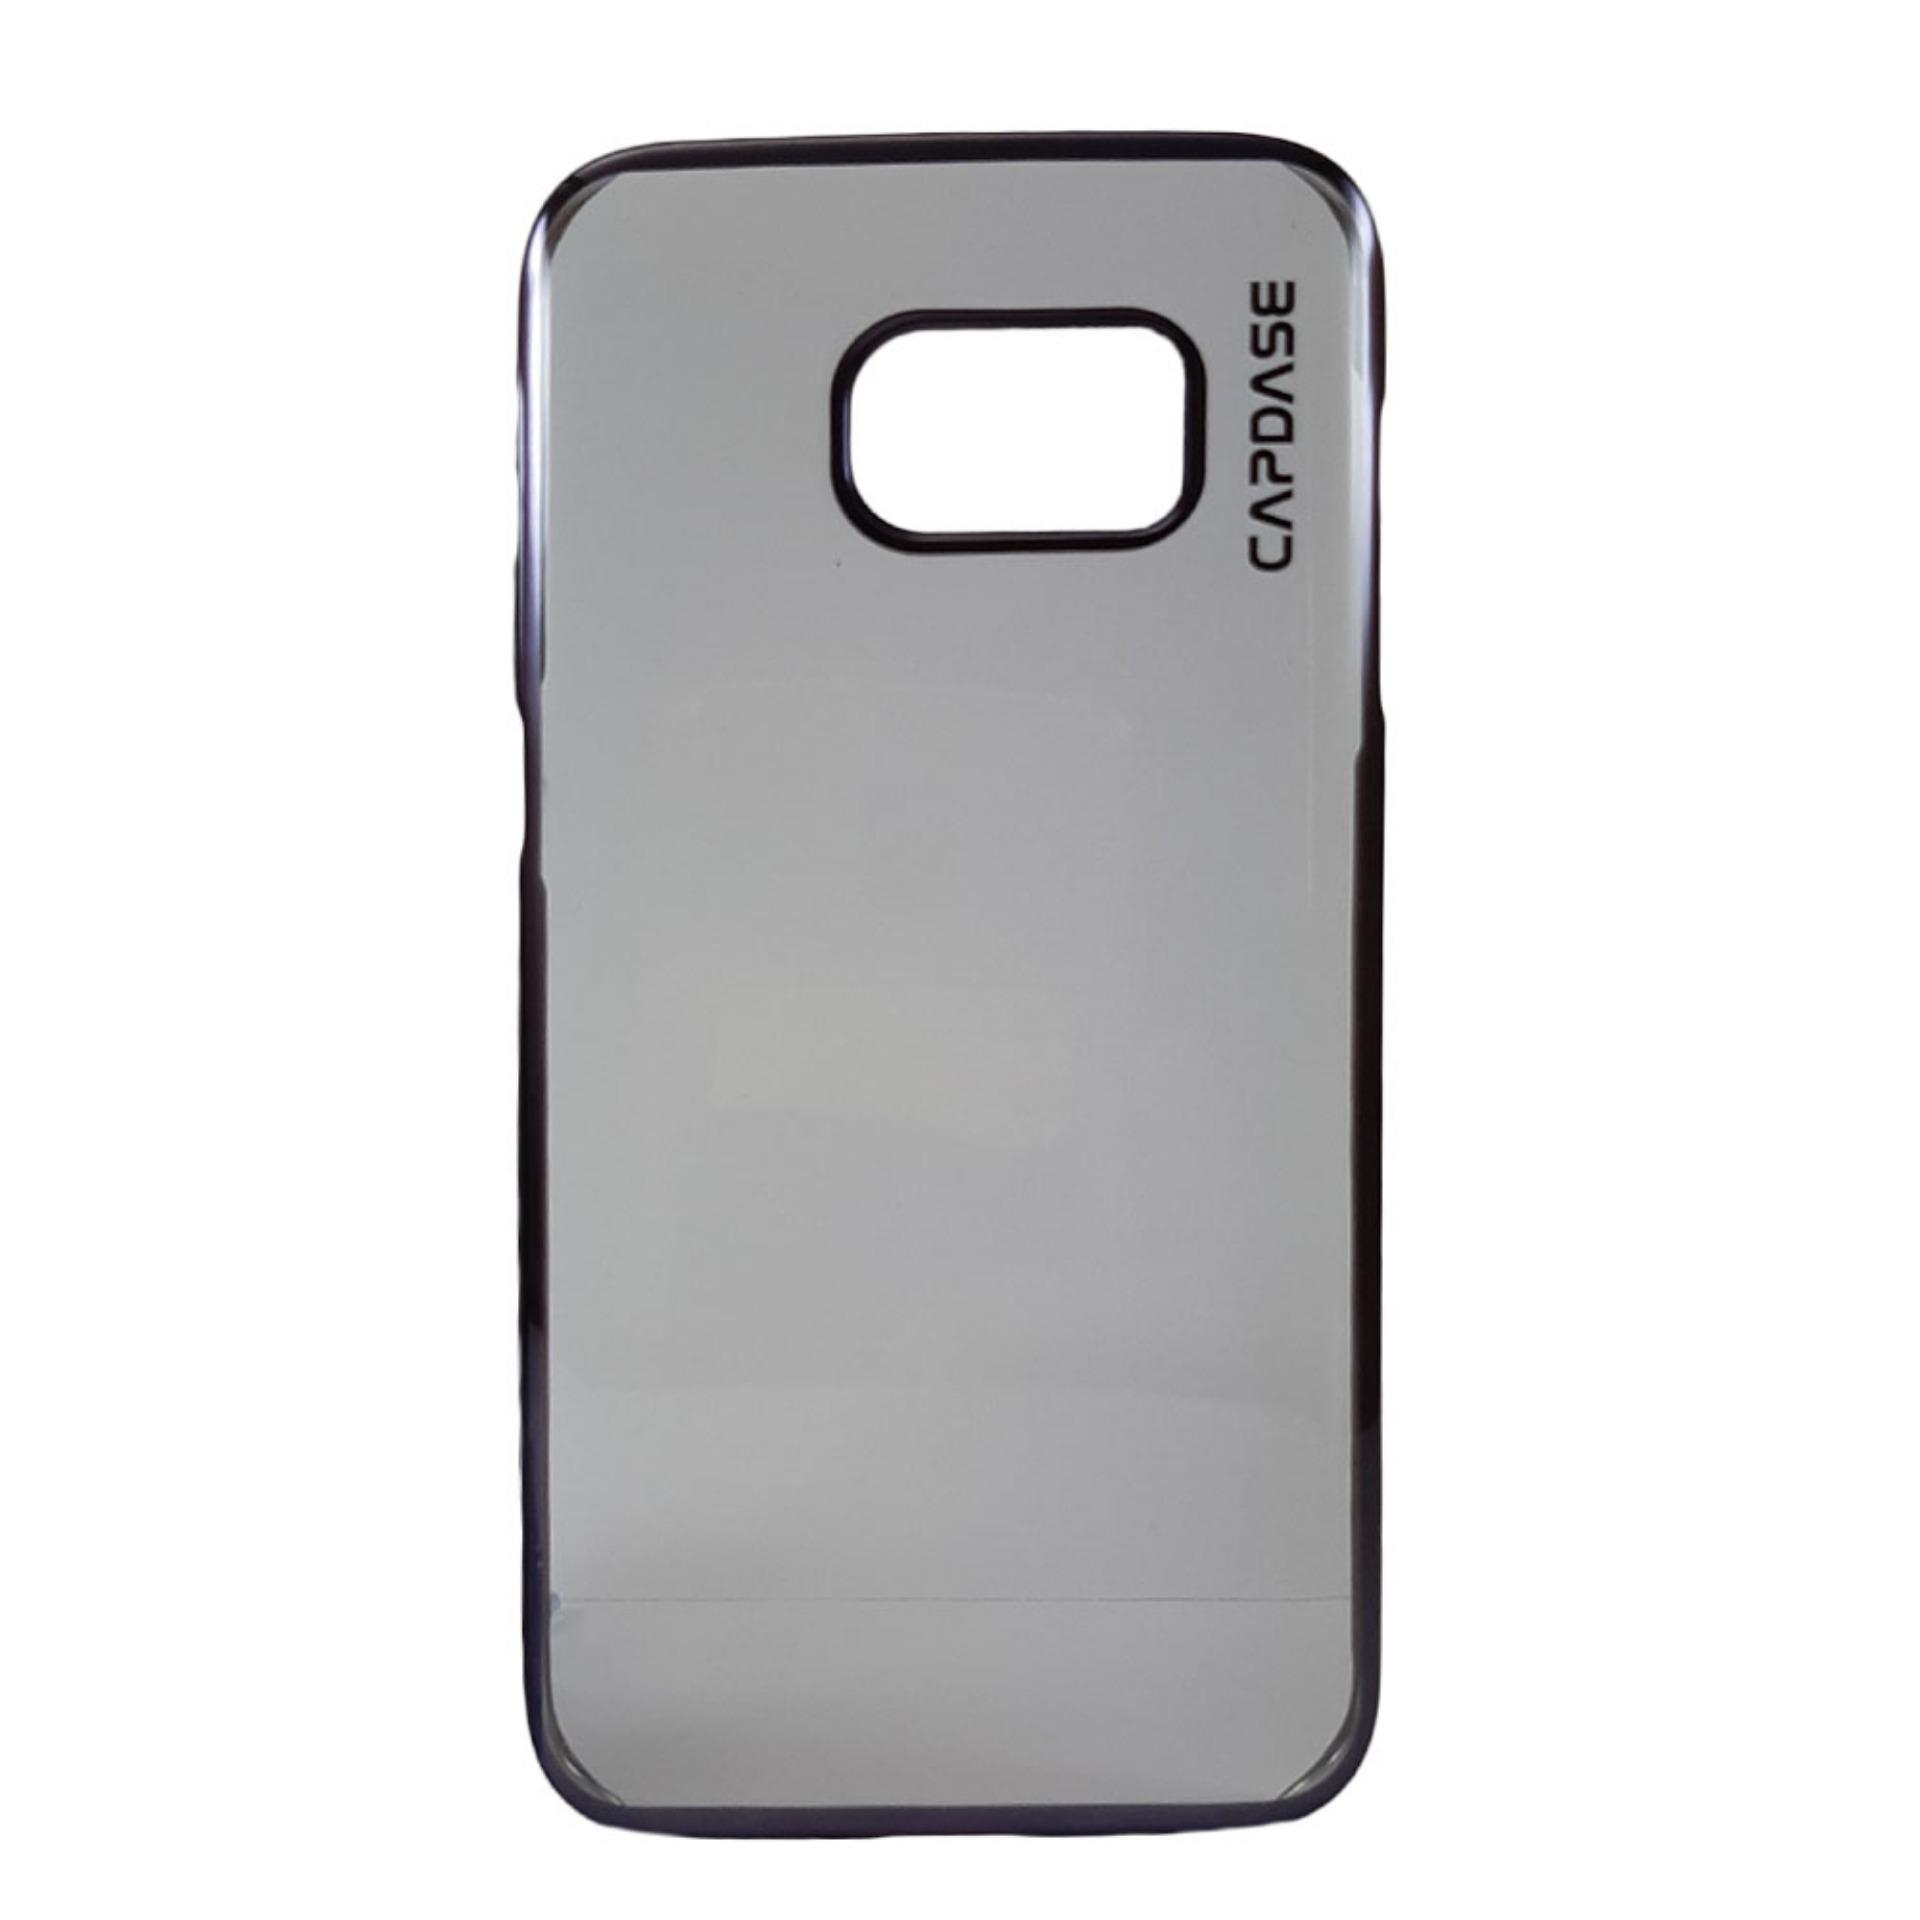 newest c078a 7b125 Capdase Philippines: Capdase price list - Capdase Tablet & Phone ...